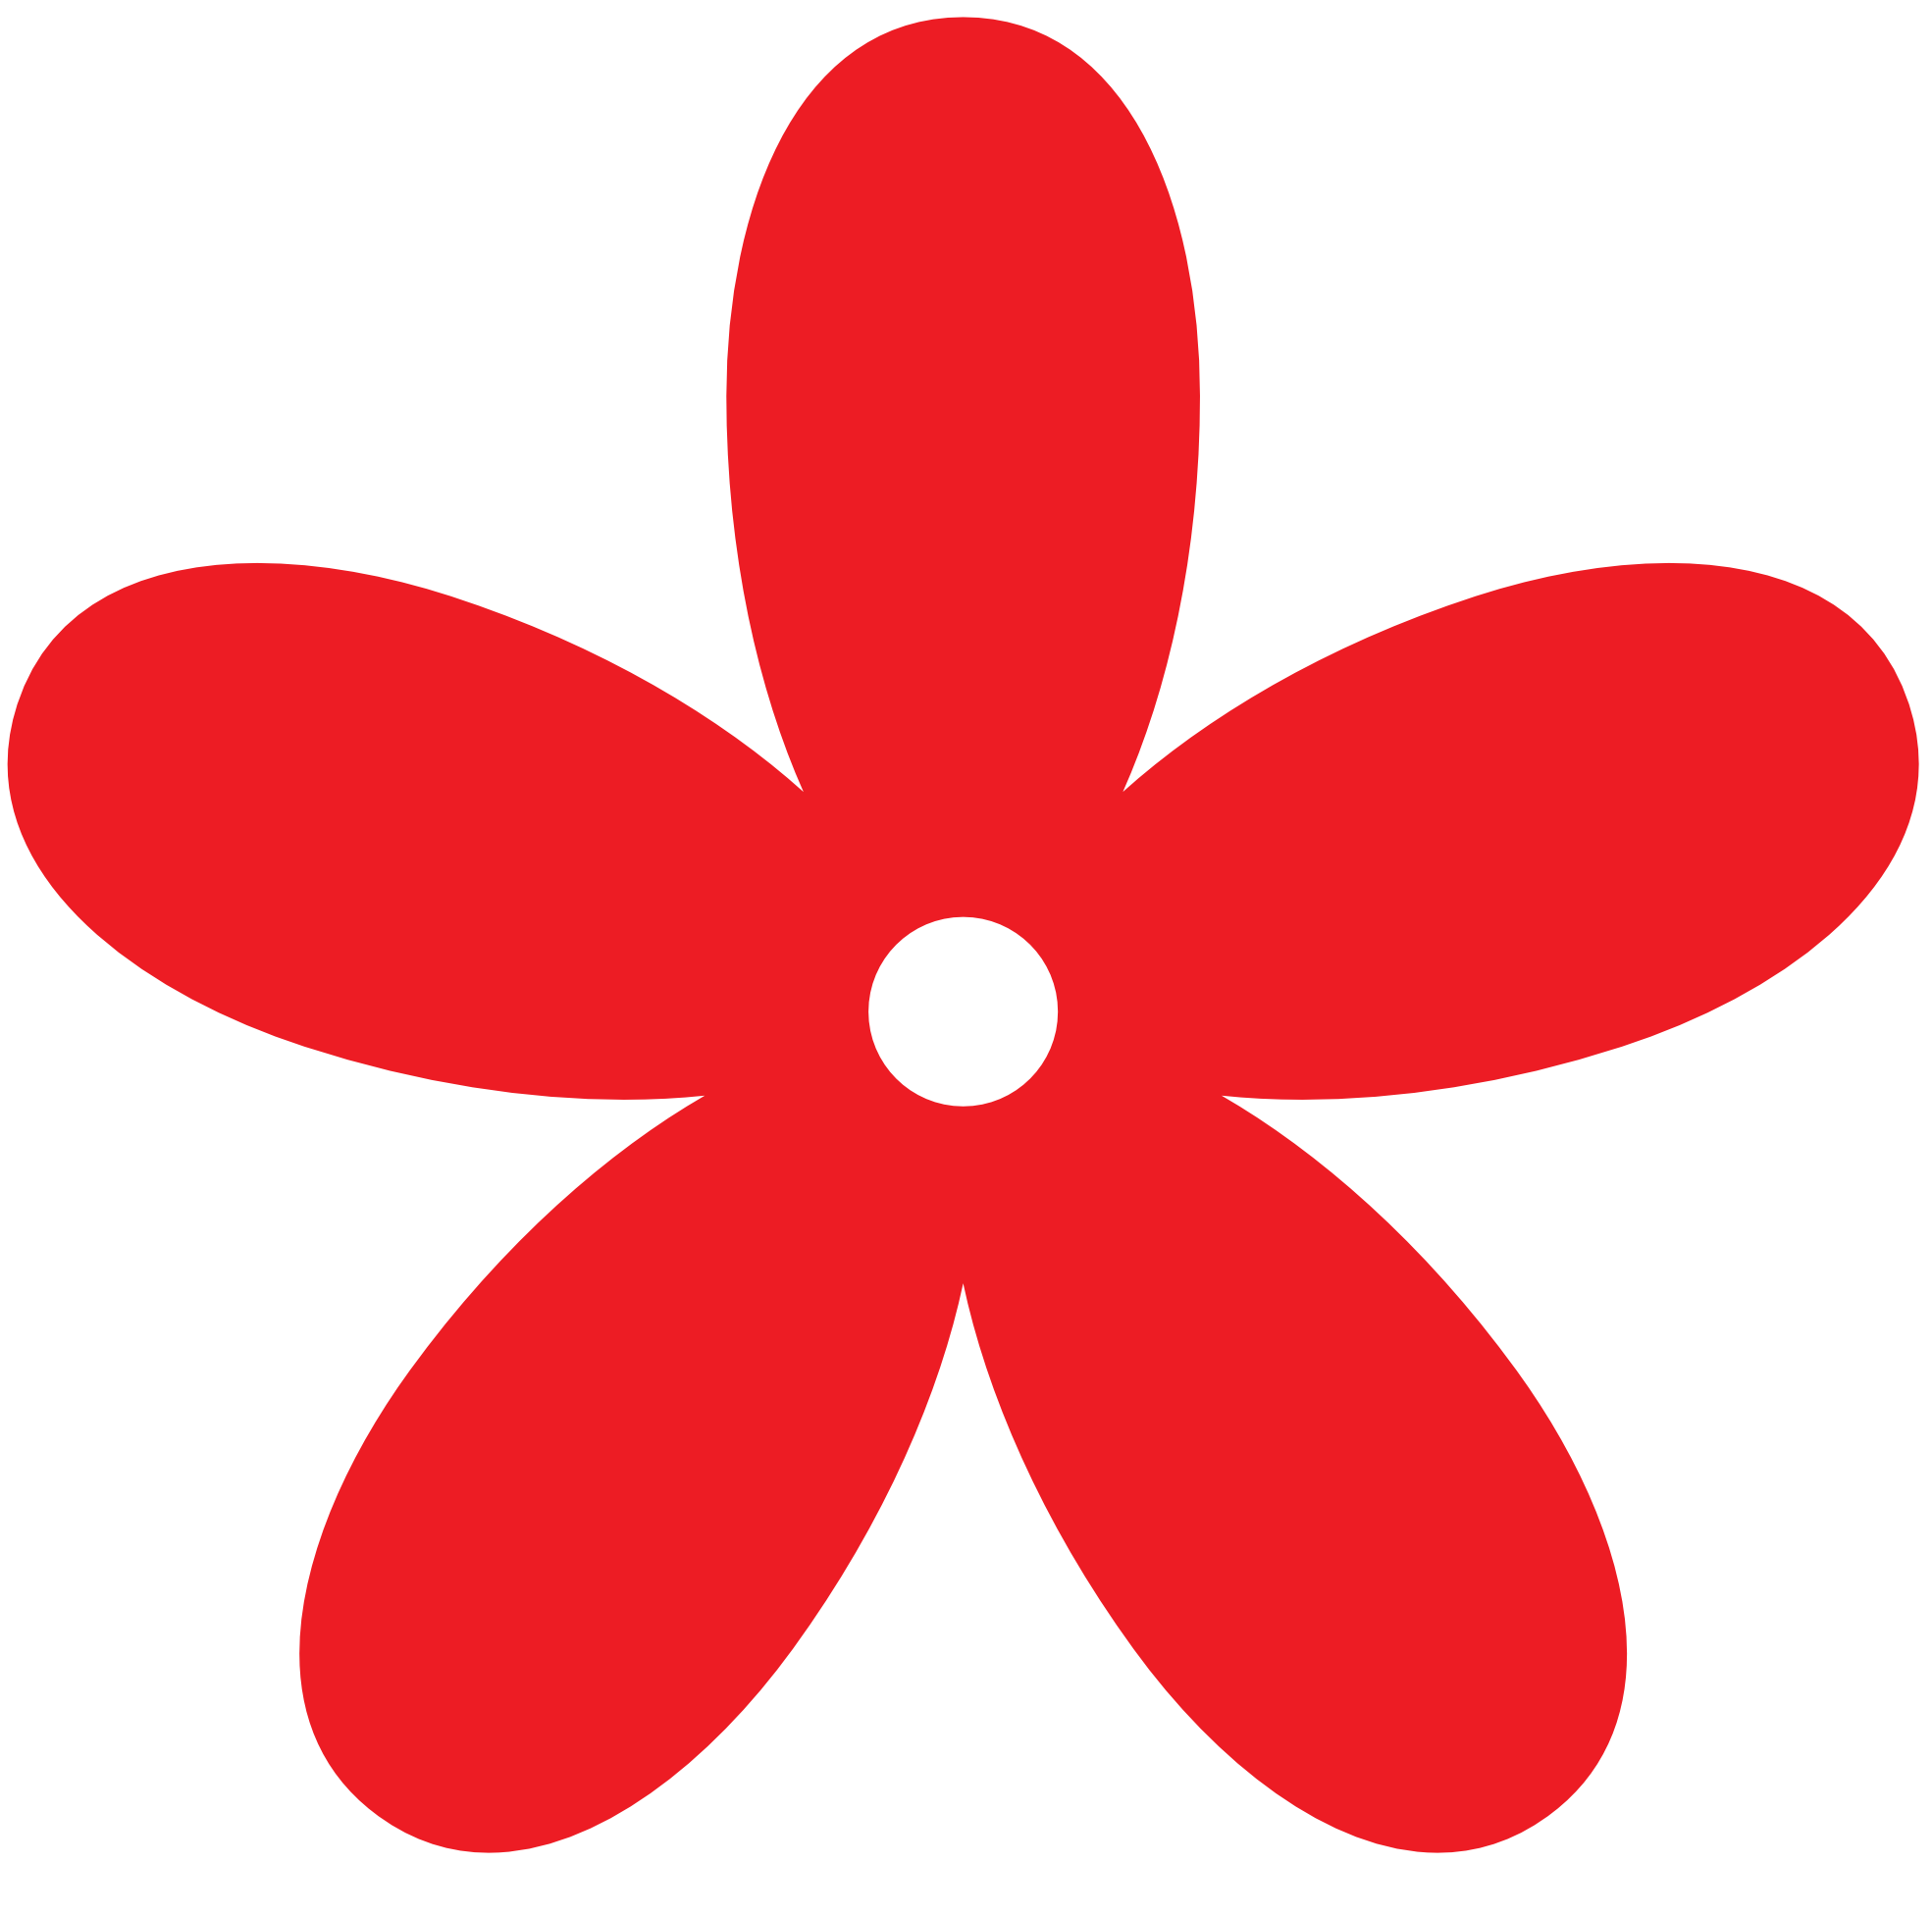 Tiny flower png. Collection of clipart